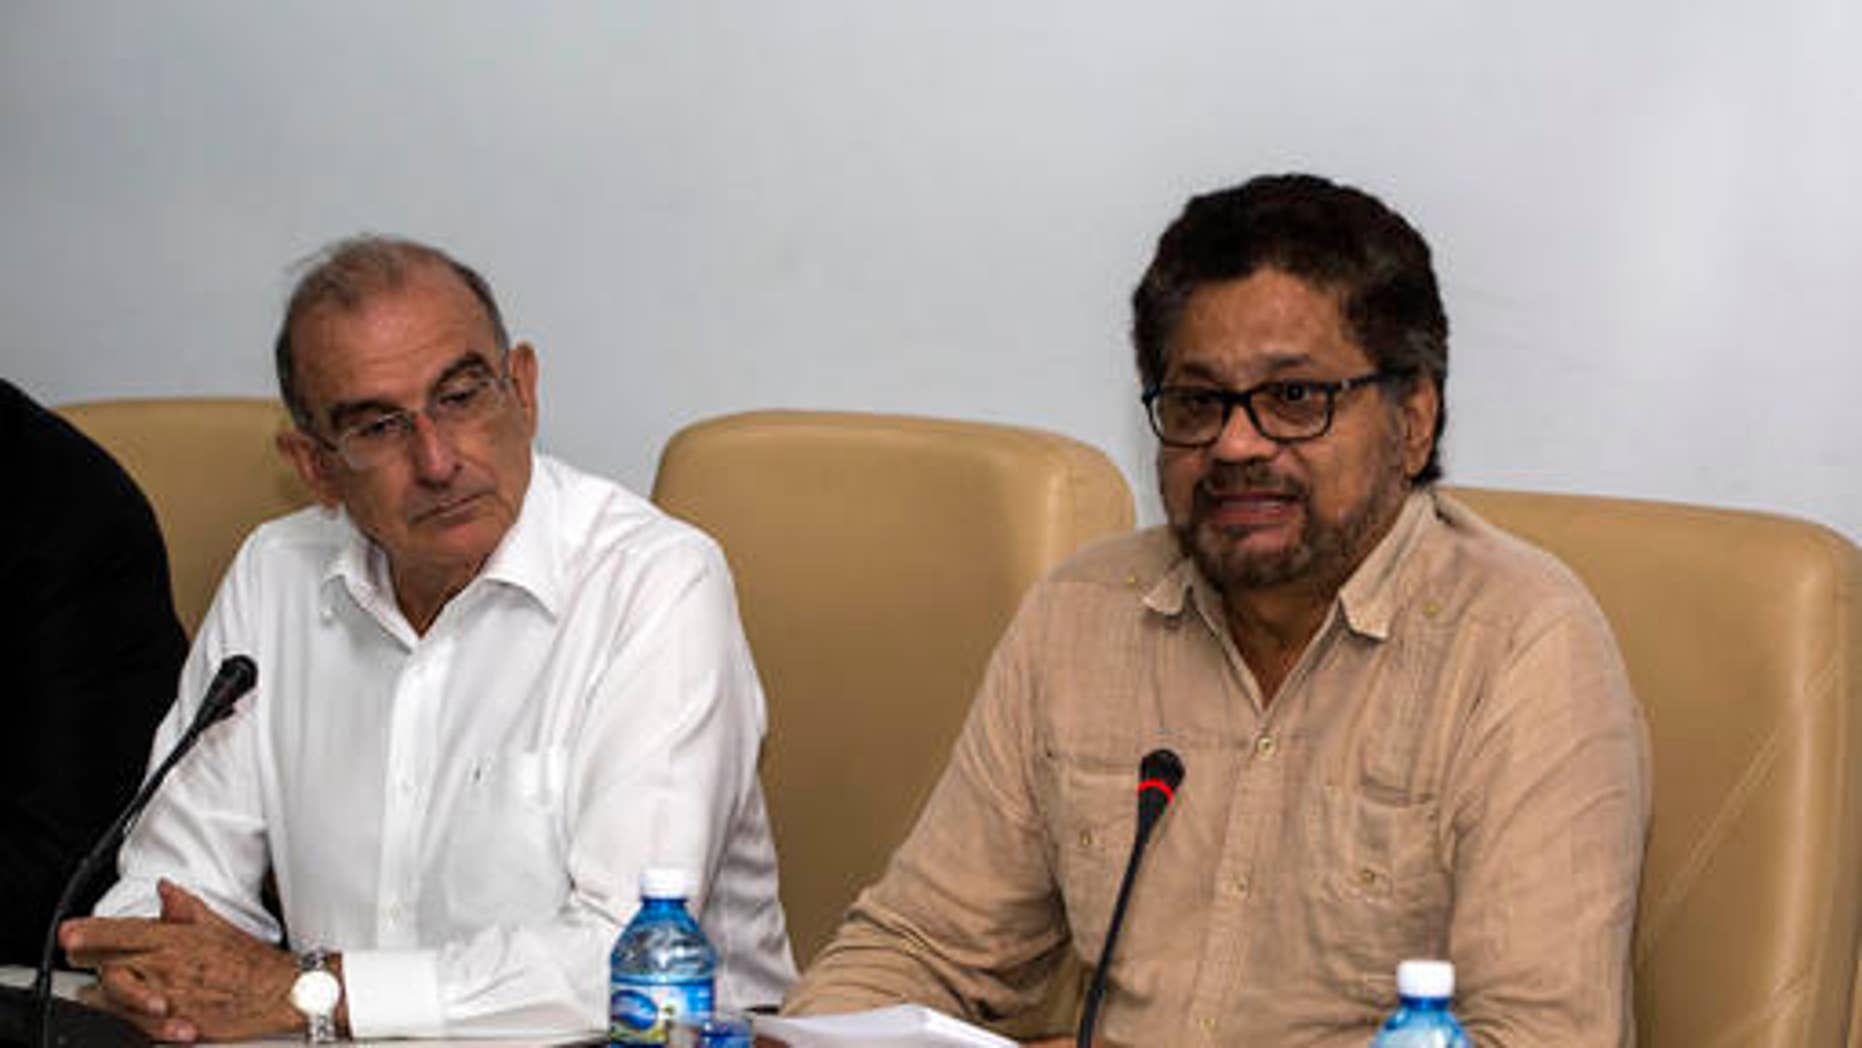 Humberto de La Calle, left, head of Colombia's government peace negotiation team, listens as Ivan Marquez, chief negotiator of the Revolutionary Armed Forces of Colombia (FARC) reads a joint statement in Havana, Cuba, Friday, Oct. 28, 2016. The statement said many new proposals have been incorporated in the text of a new peace accord after voters narrowly defeated the deal on Oct. 2.  (AP Photo/Desmond Boylan)